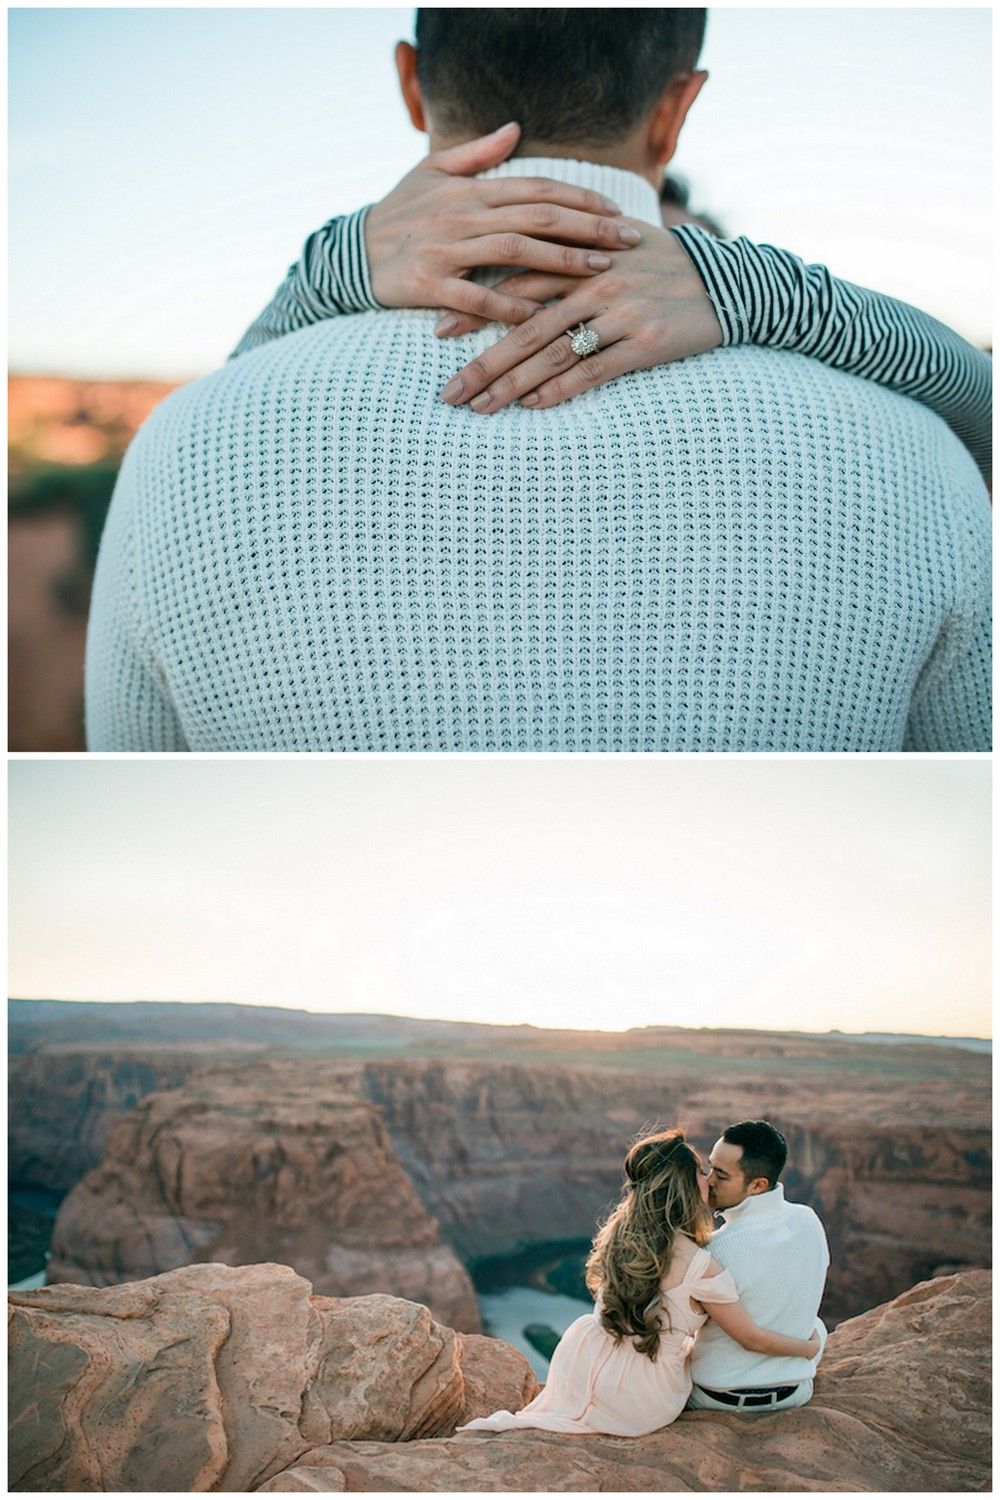 Creative engagement announcement photos on social media